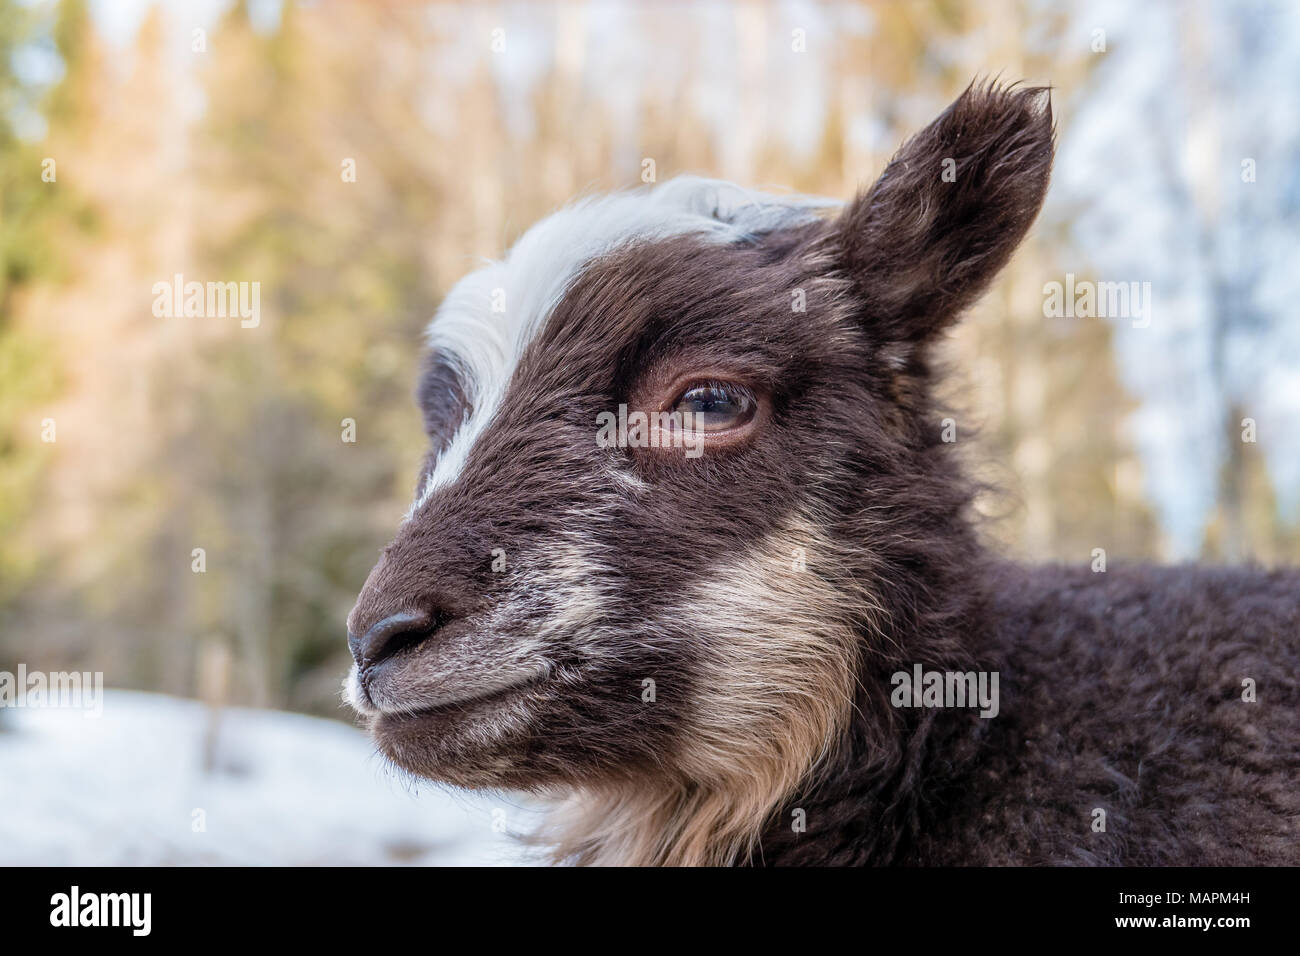 close up on a little brown and white lamb Stock Photo